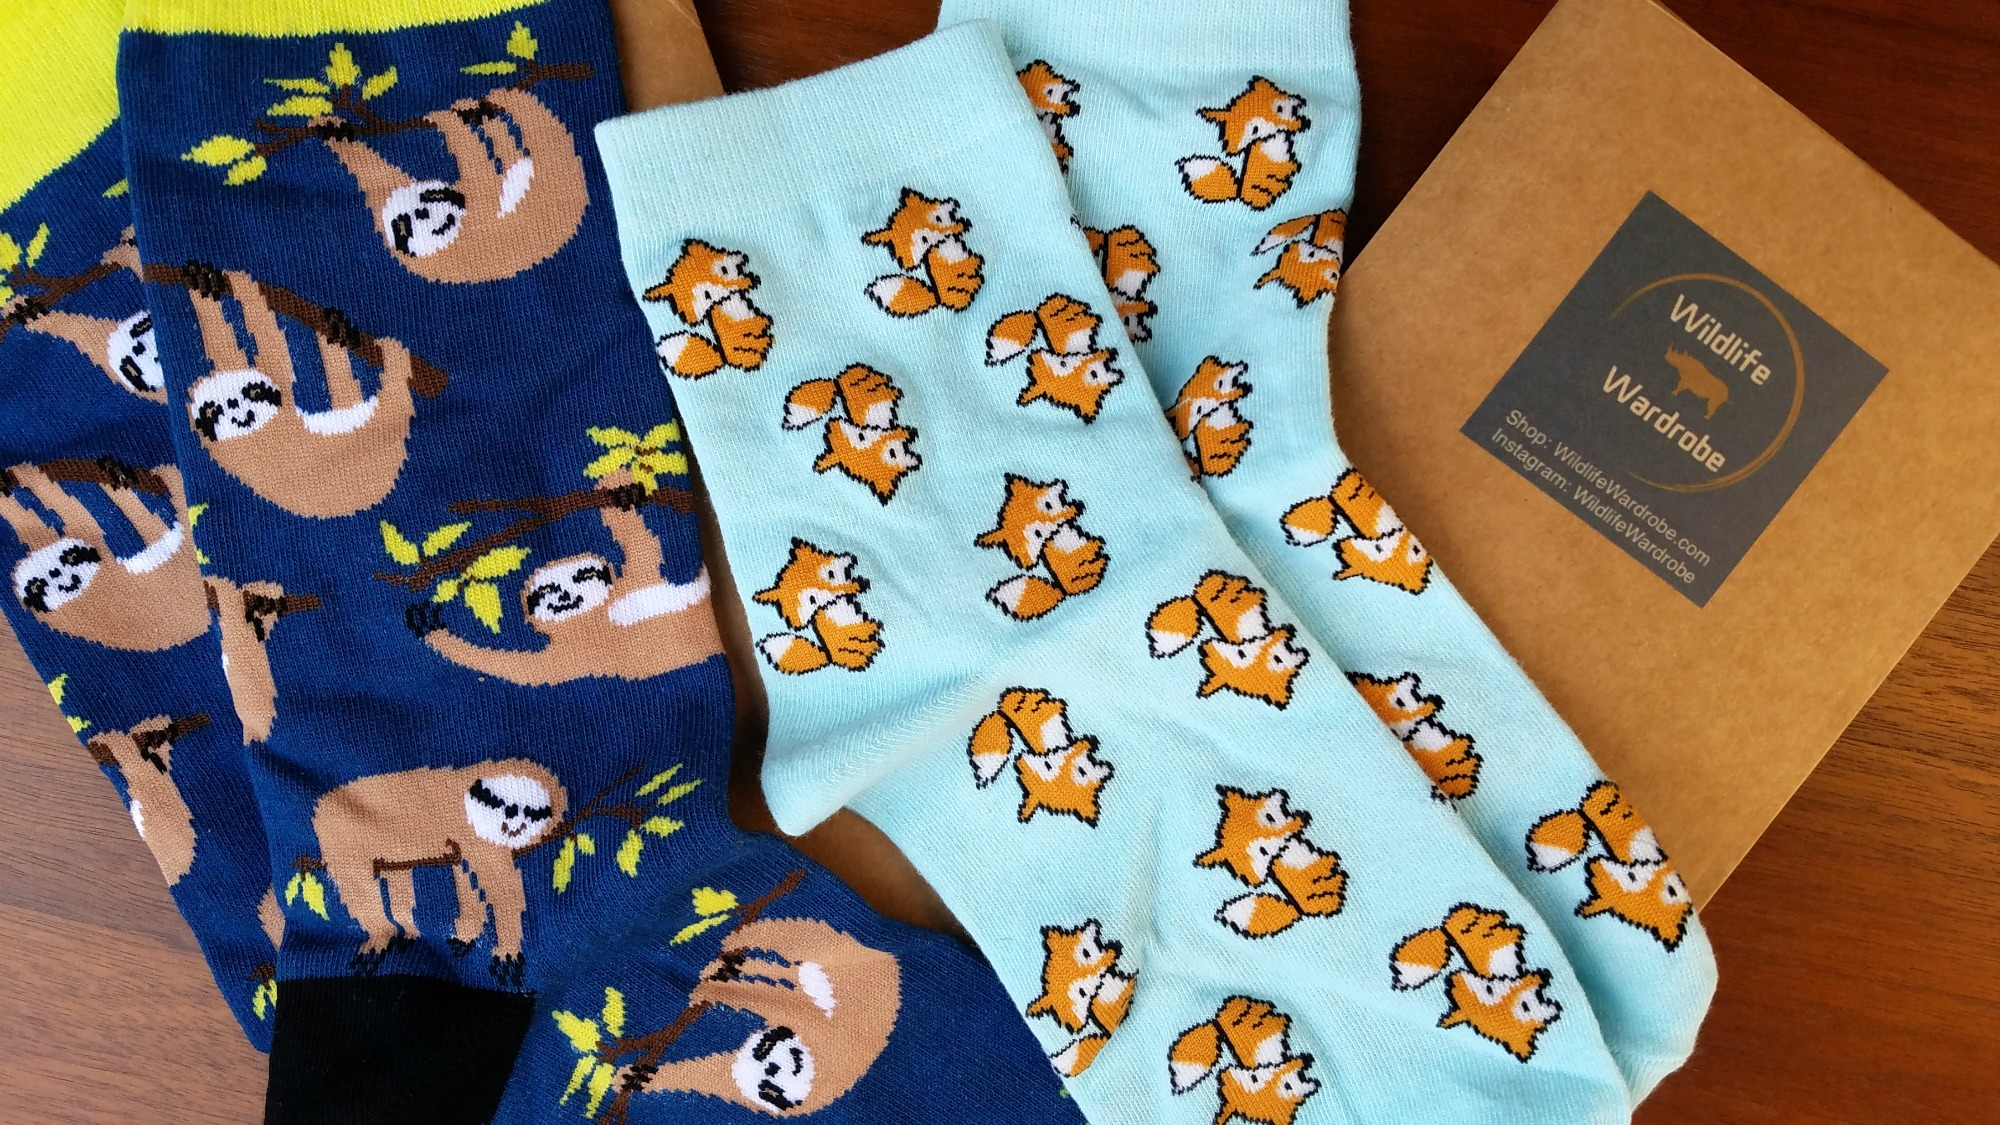 Sleepy Sloth and Fantastic Fox socks from Wildlife Wardrobe